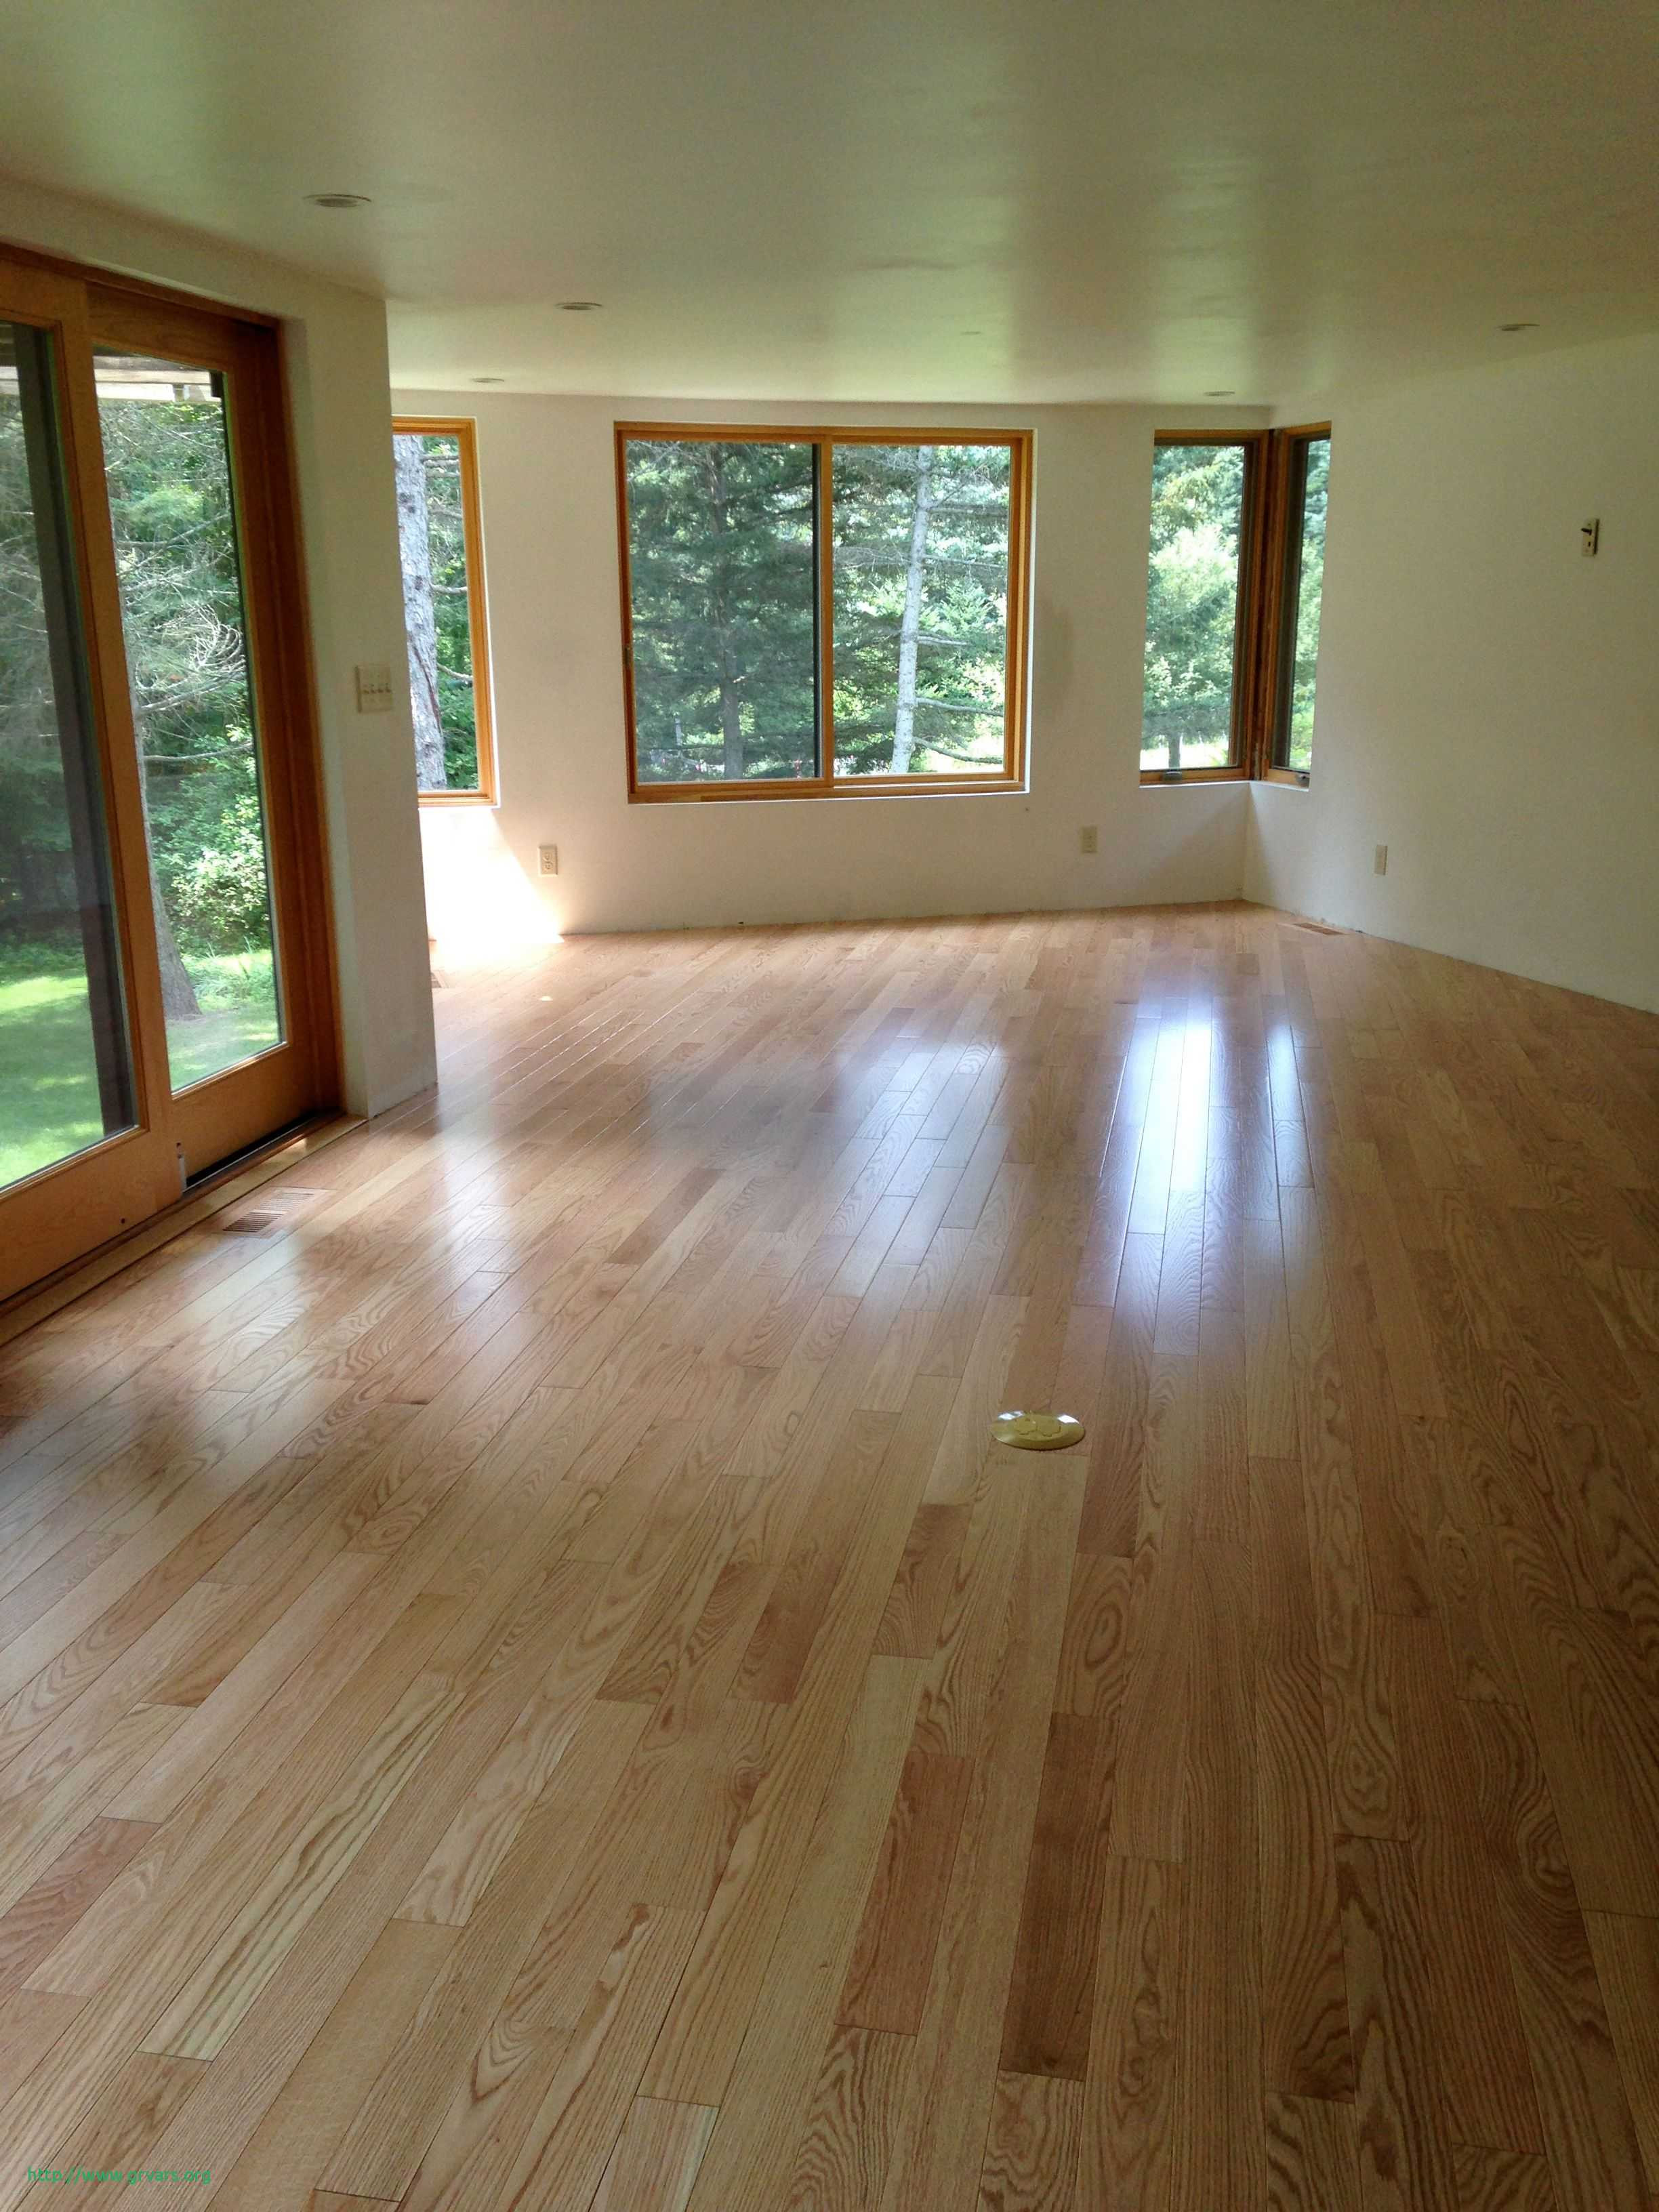 Can You Install Hardwood Floors Yourself Of 15 Nouveau How to Restore Hardwood Floors Yourself Ideas Blog for Hardwood Floor Refinishing is An Affordable Way to Spruce Up Your Space without A Full Replacement